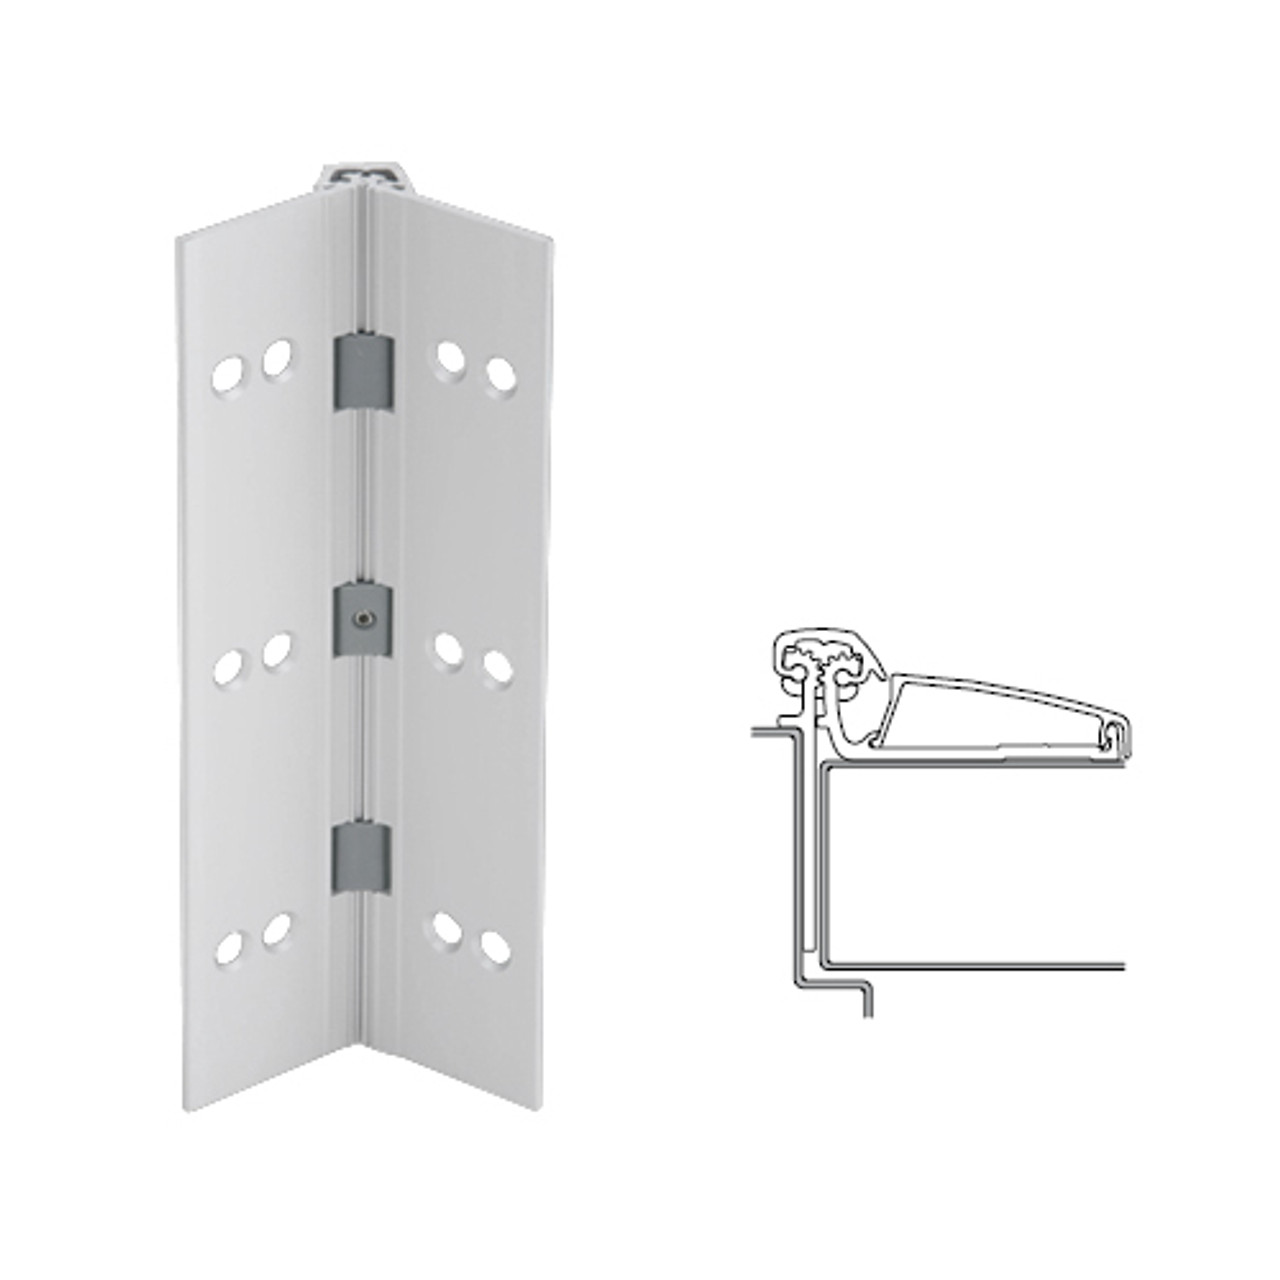 046XY-US28-120-TFWD IVES Adjustable Half Surface Continuous Geared Hinges with Thread Forming Screws in Satin Aluminum